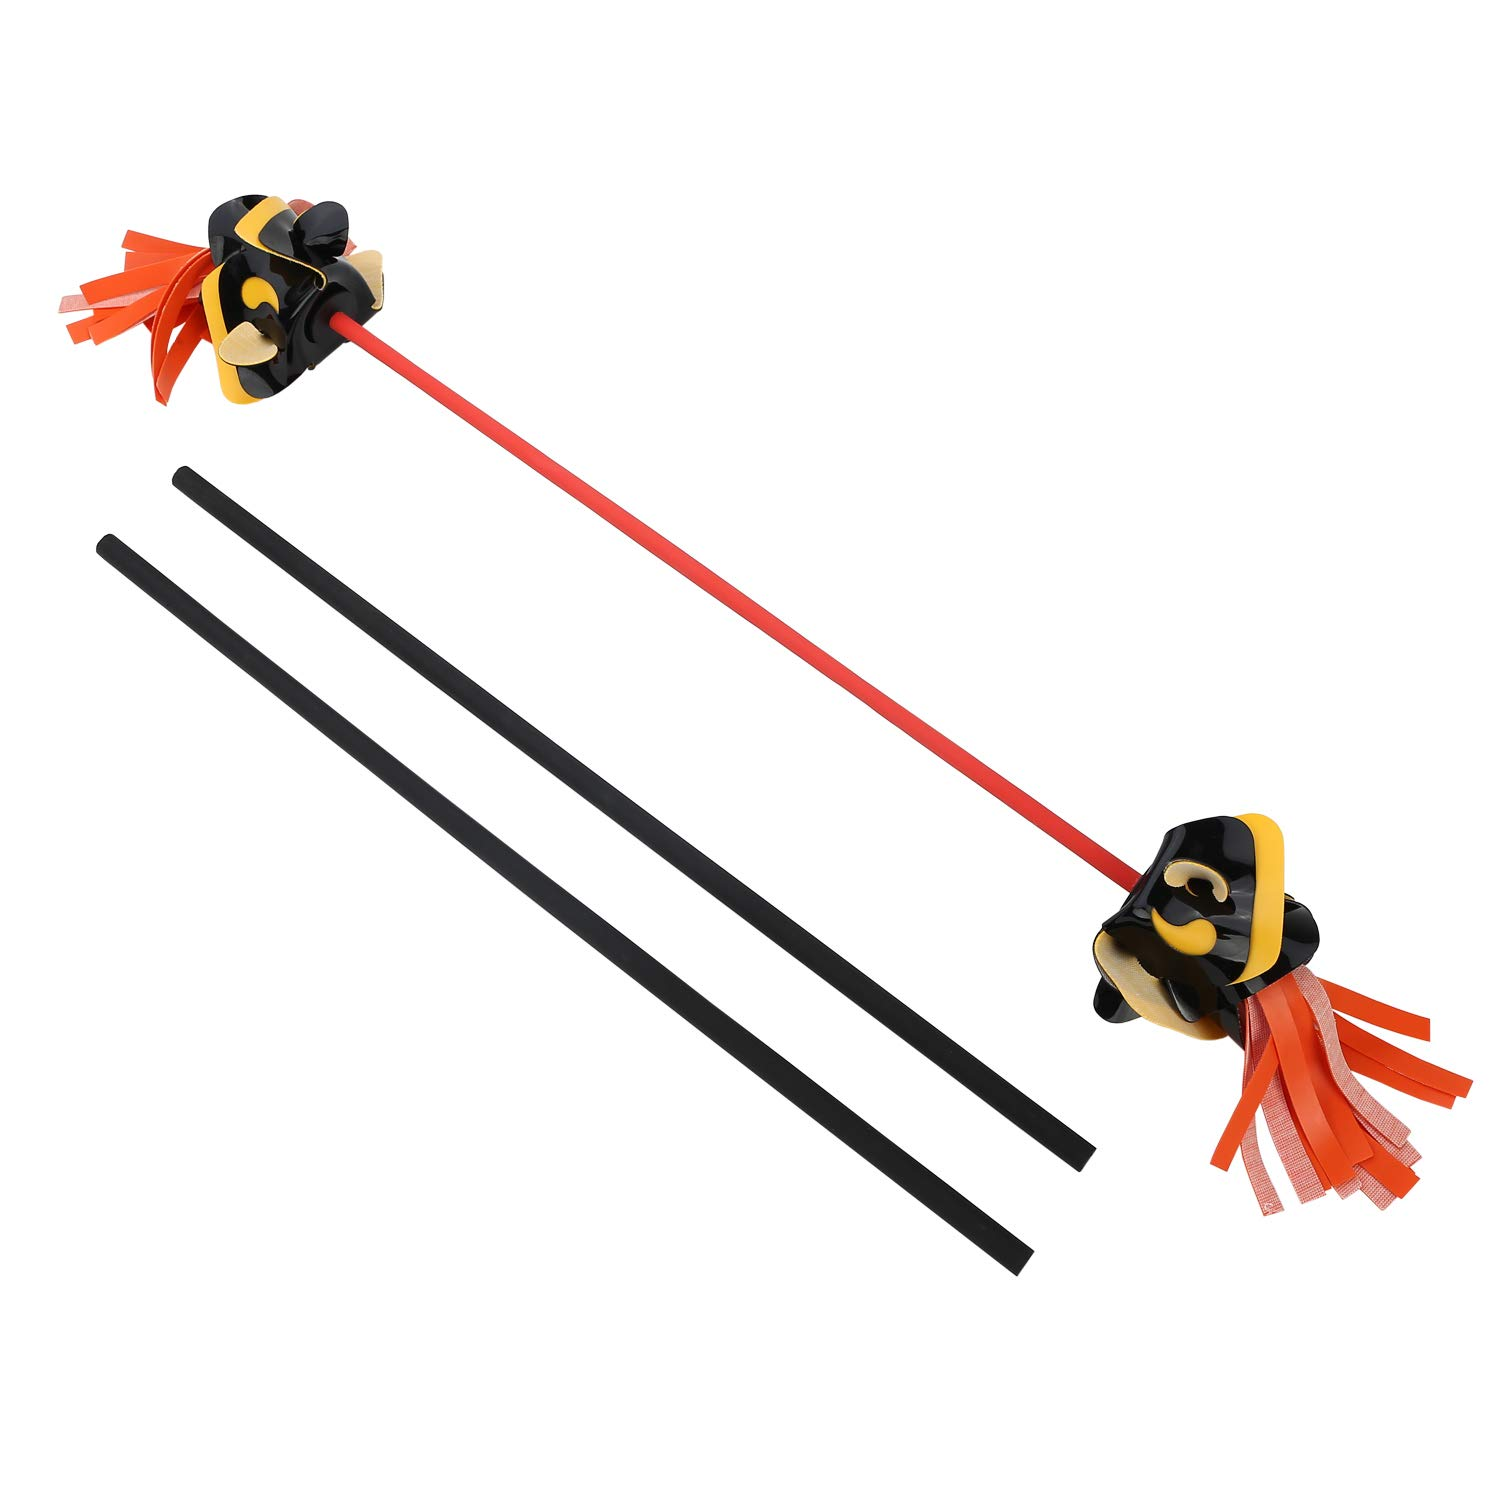 YuXing Professional Juggling Flower Sticks Devil Sticks (30.3'' 4.96OZ) + 2 Hand Sticks (20.5'' 2.91OZ) by YuXing TOY